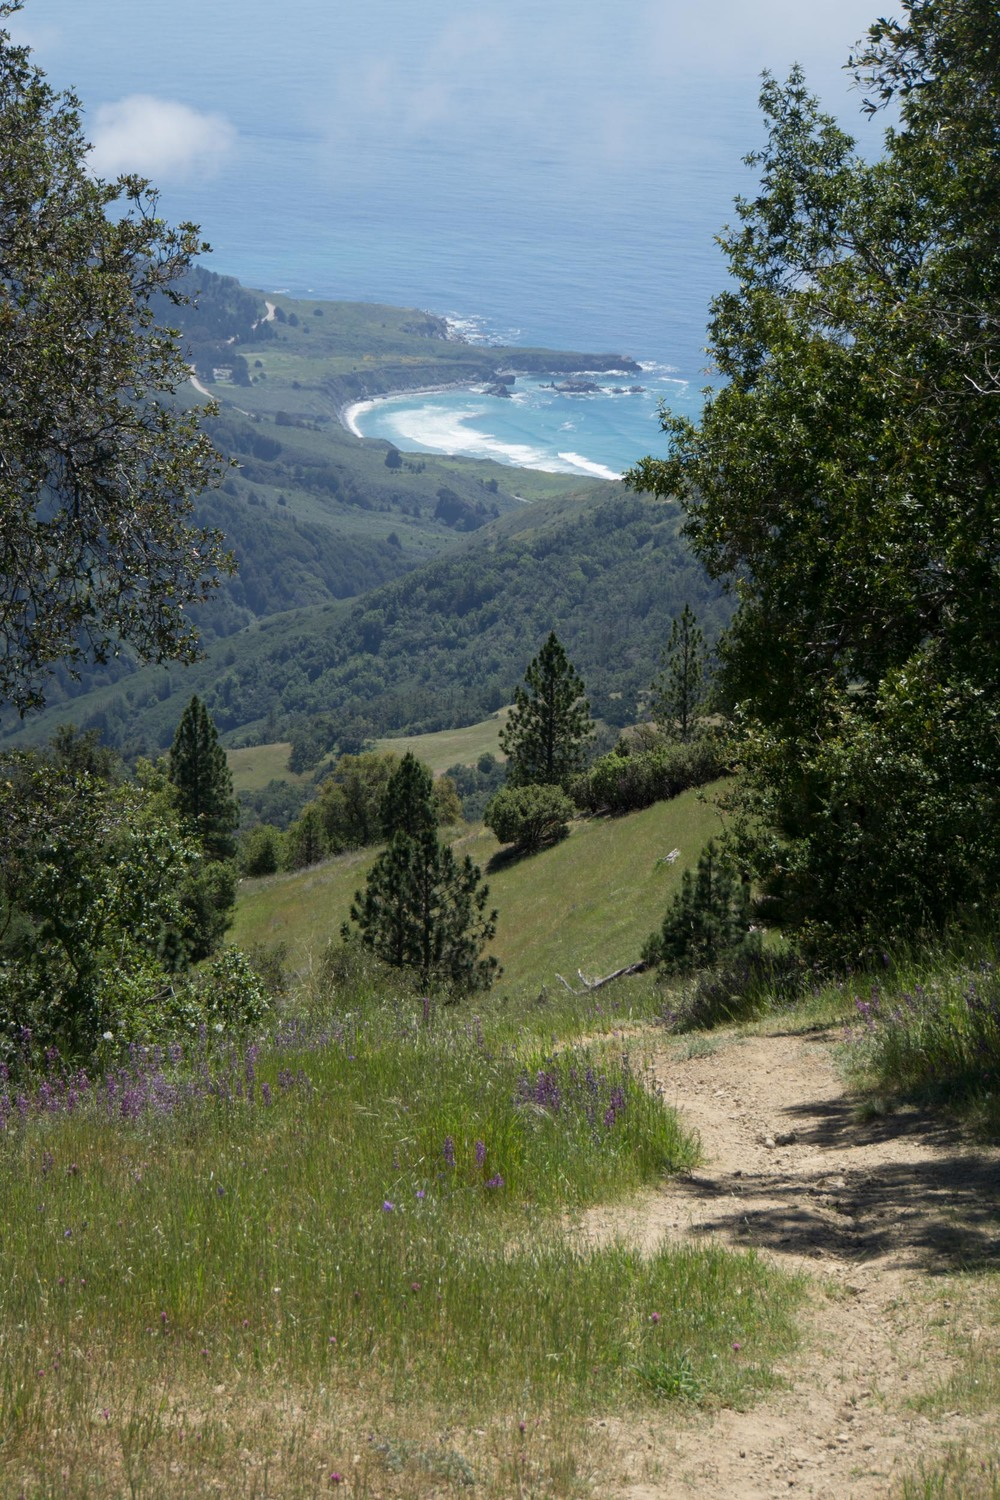 Looking down on Sand Dollar Beach.